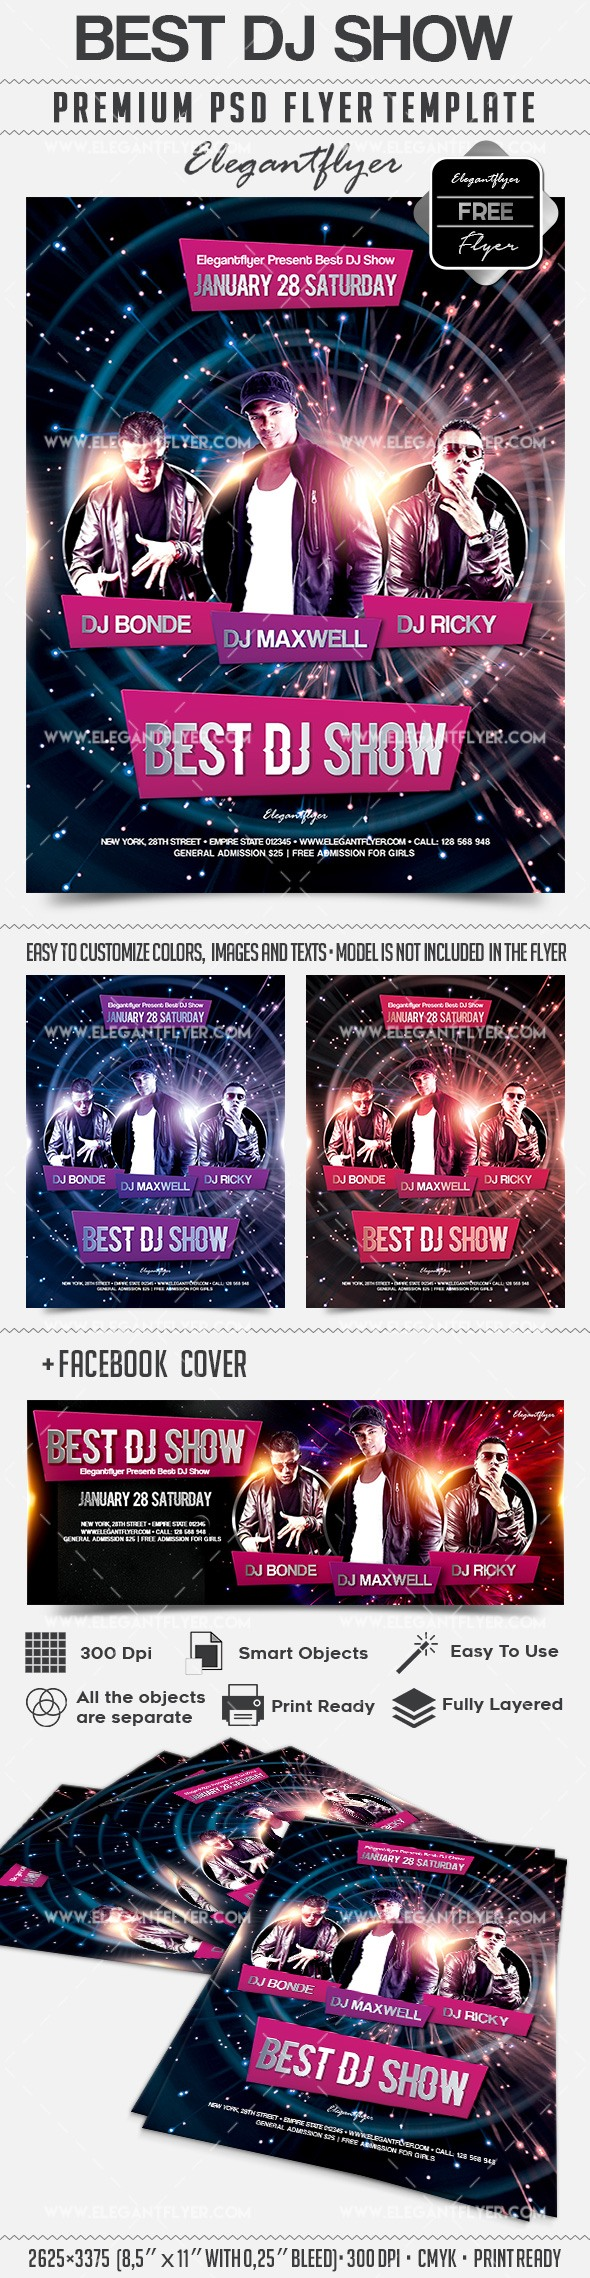 Best DJ Show – Free Flyer PSD Template + Facebook Cover